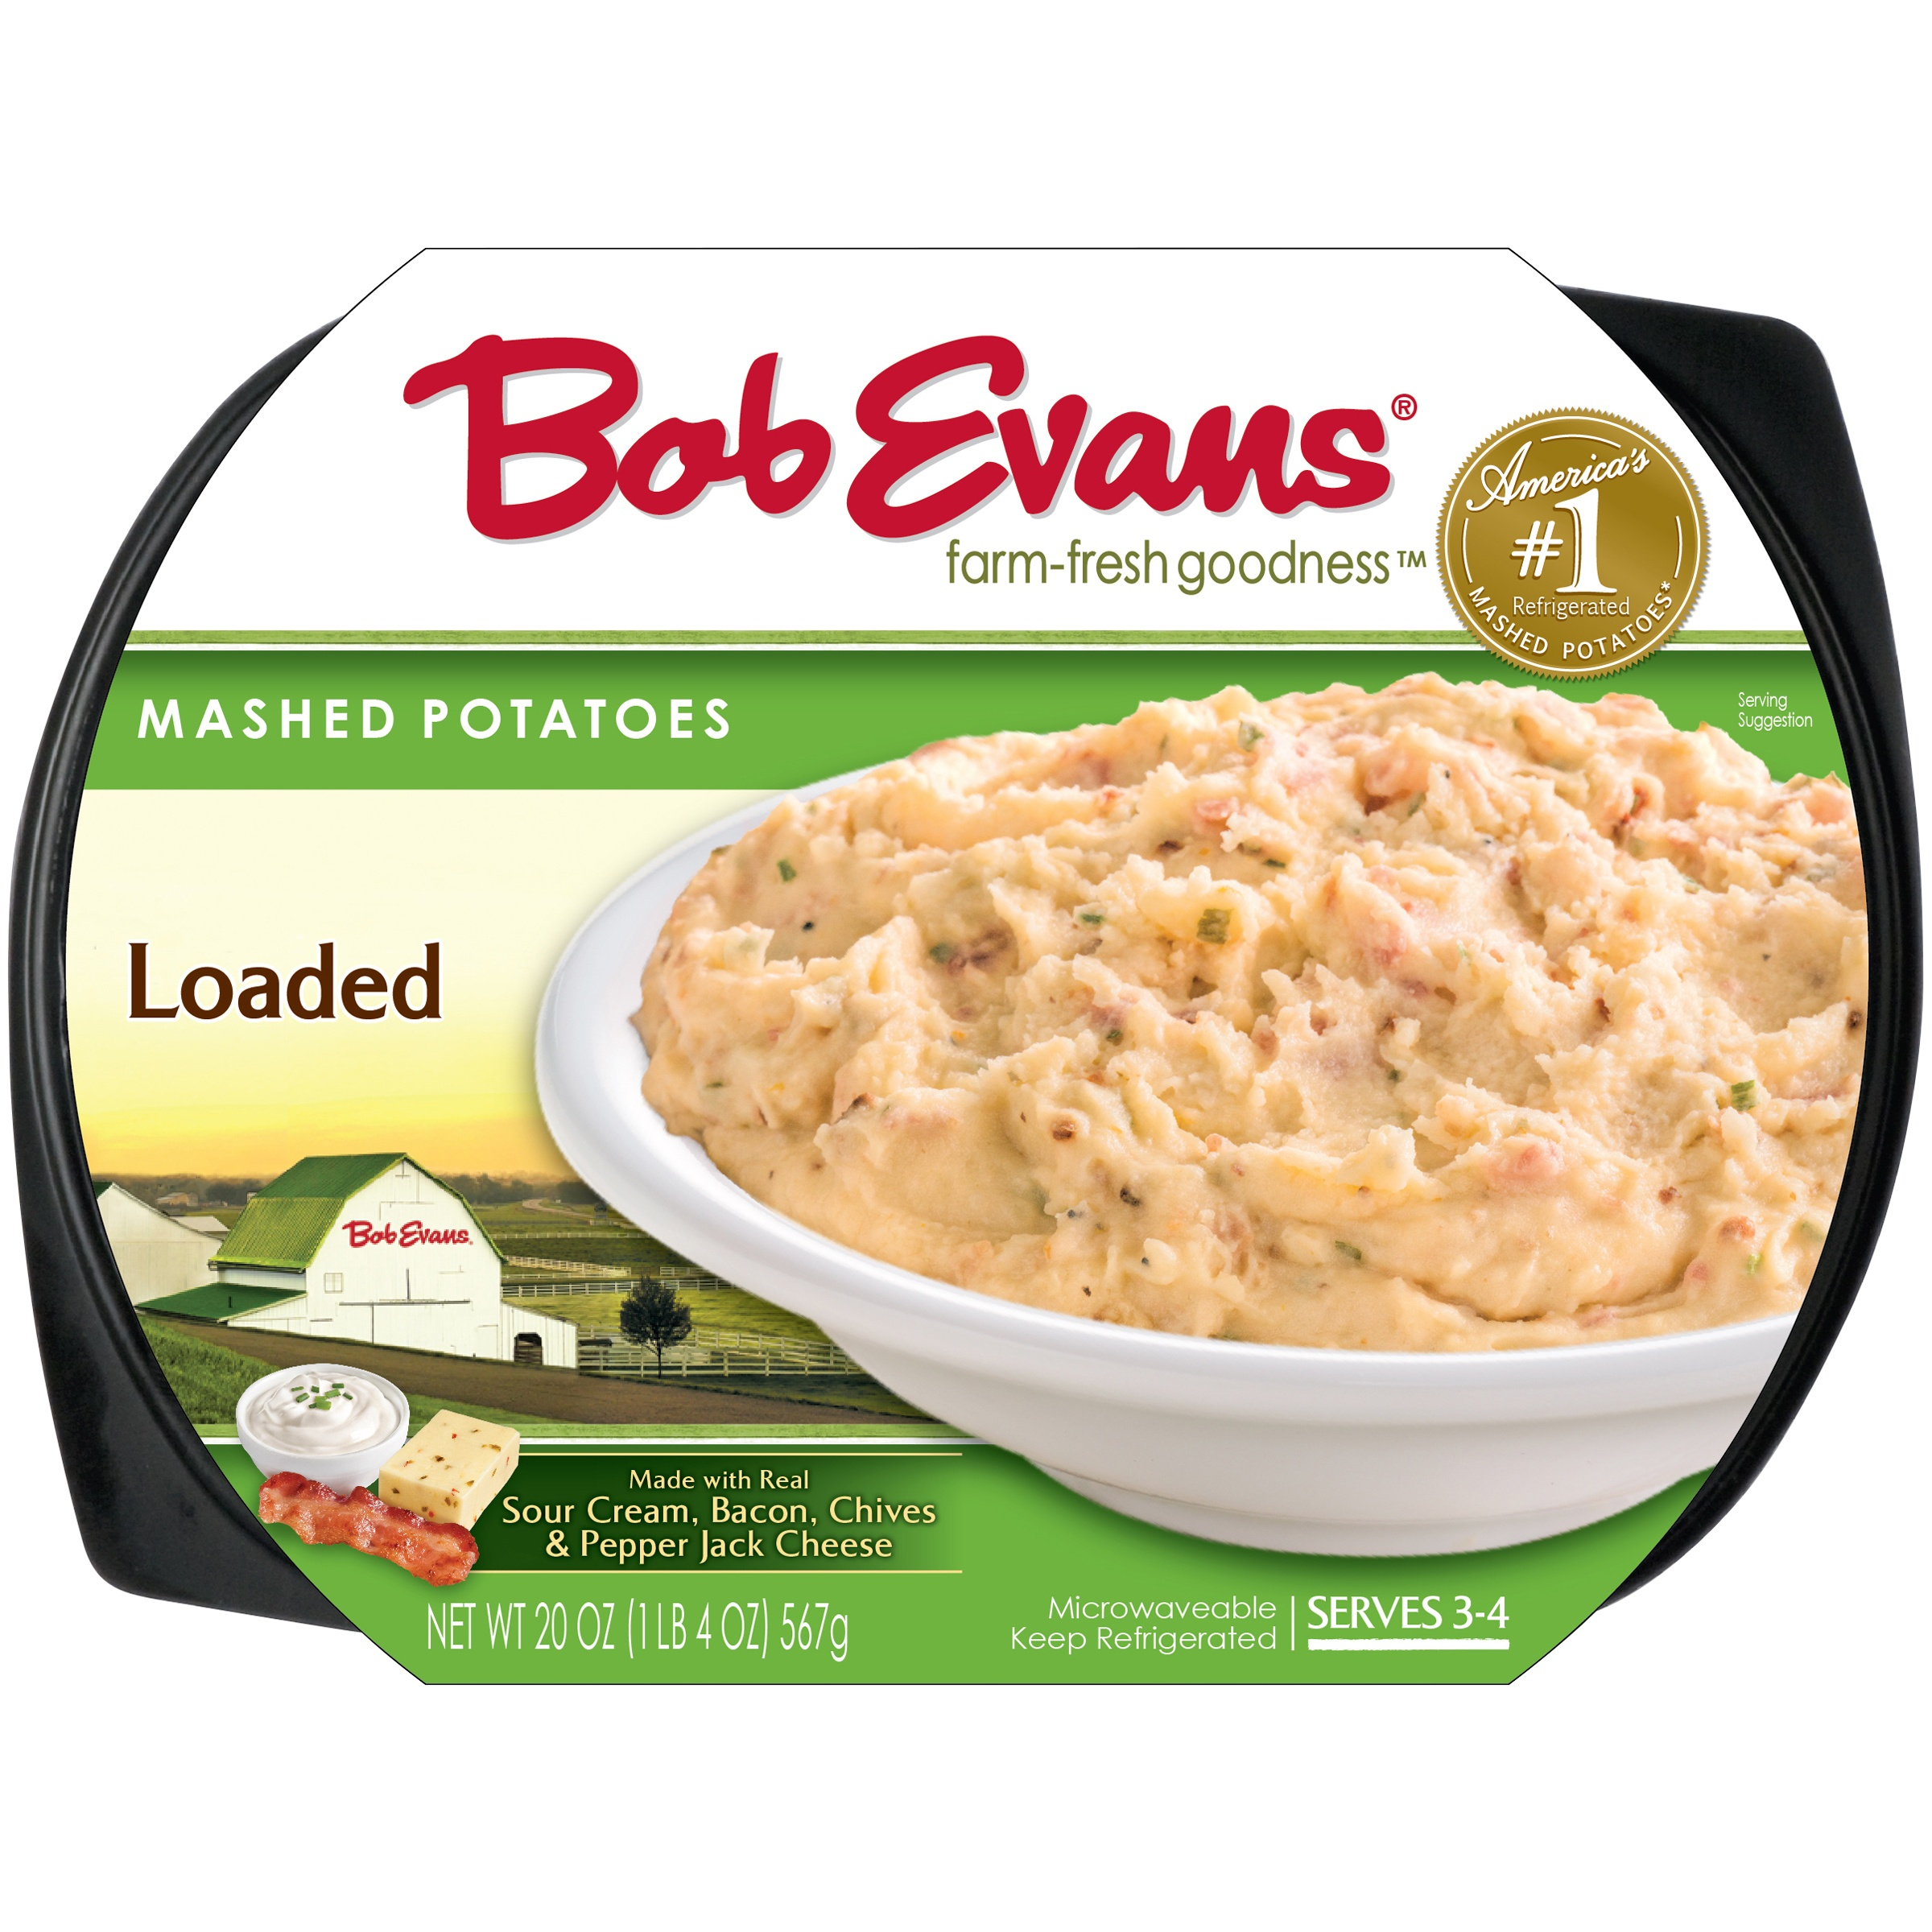 Bob Evans Loaded Mashed Potatoes 20 oz. Tray - Walmart.com on shepherd's pie, bob evans smiley face potatoes, lyonnaise potatoes, frozen sweet potatoes, ham and scalloped potatoes, duchess potatoes, apple pie, seasoned potatoes, bob evans fries, bob evans potato, russet burbank, bob evans salads, bob evans waffles, frozen scalloped potatoes, bob evans cinnamon pancake recipe, potato bread, bob evans thanksgiving menu, bob evans to go thanksgiving, pumpkin pie, homemade scalloped potatoes, pecan pie, simply potatoes, olivier salad, bangers and mash, chocolate chip cookie, oven baked scalloped potatoes, potato salad, potato chip, apple sauce, bob evans fried potatoes, green bean casserole, chicken and potatoes, idahoan potatoes, baked potato,